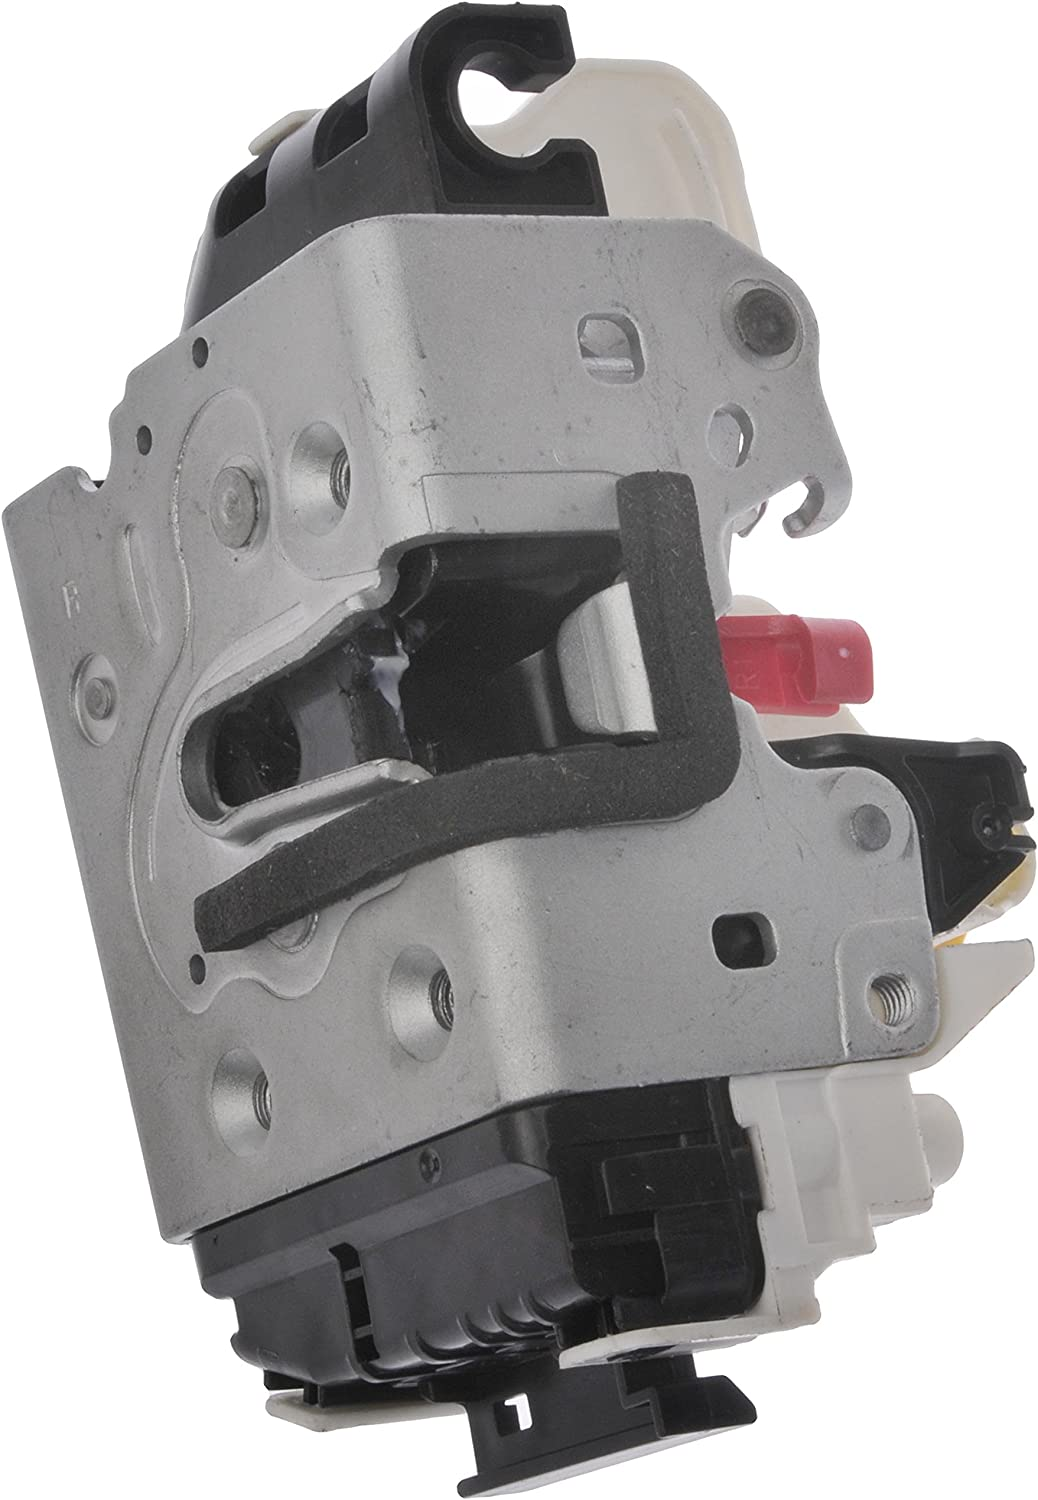 Dorman 931-093 Door Lock Actuator Motor